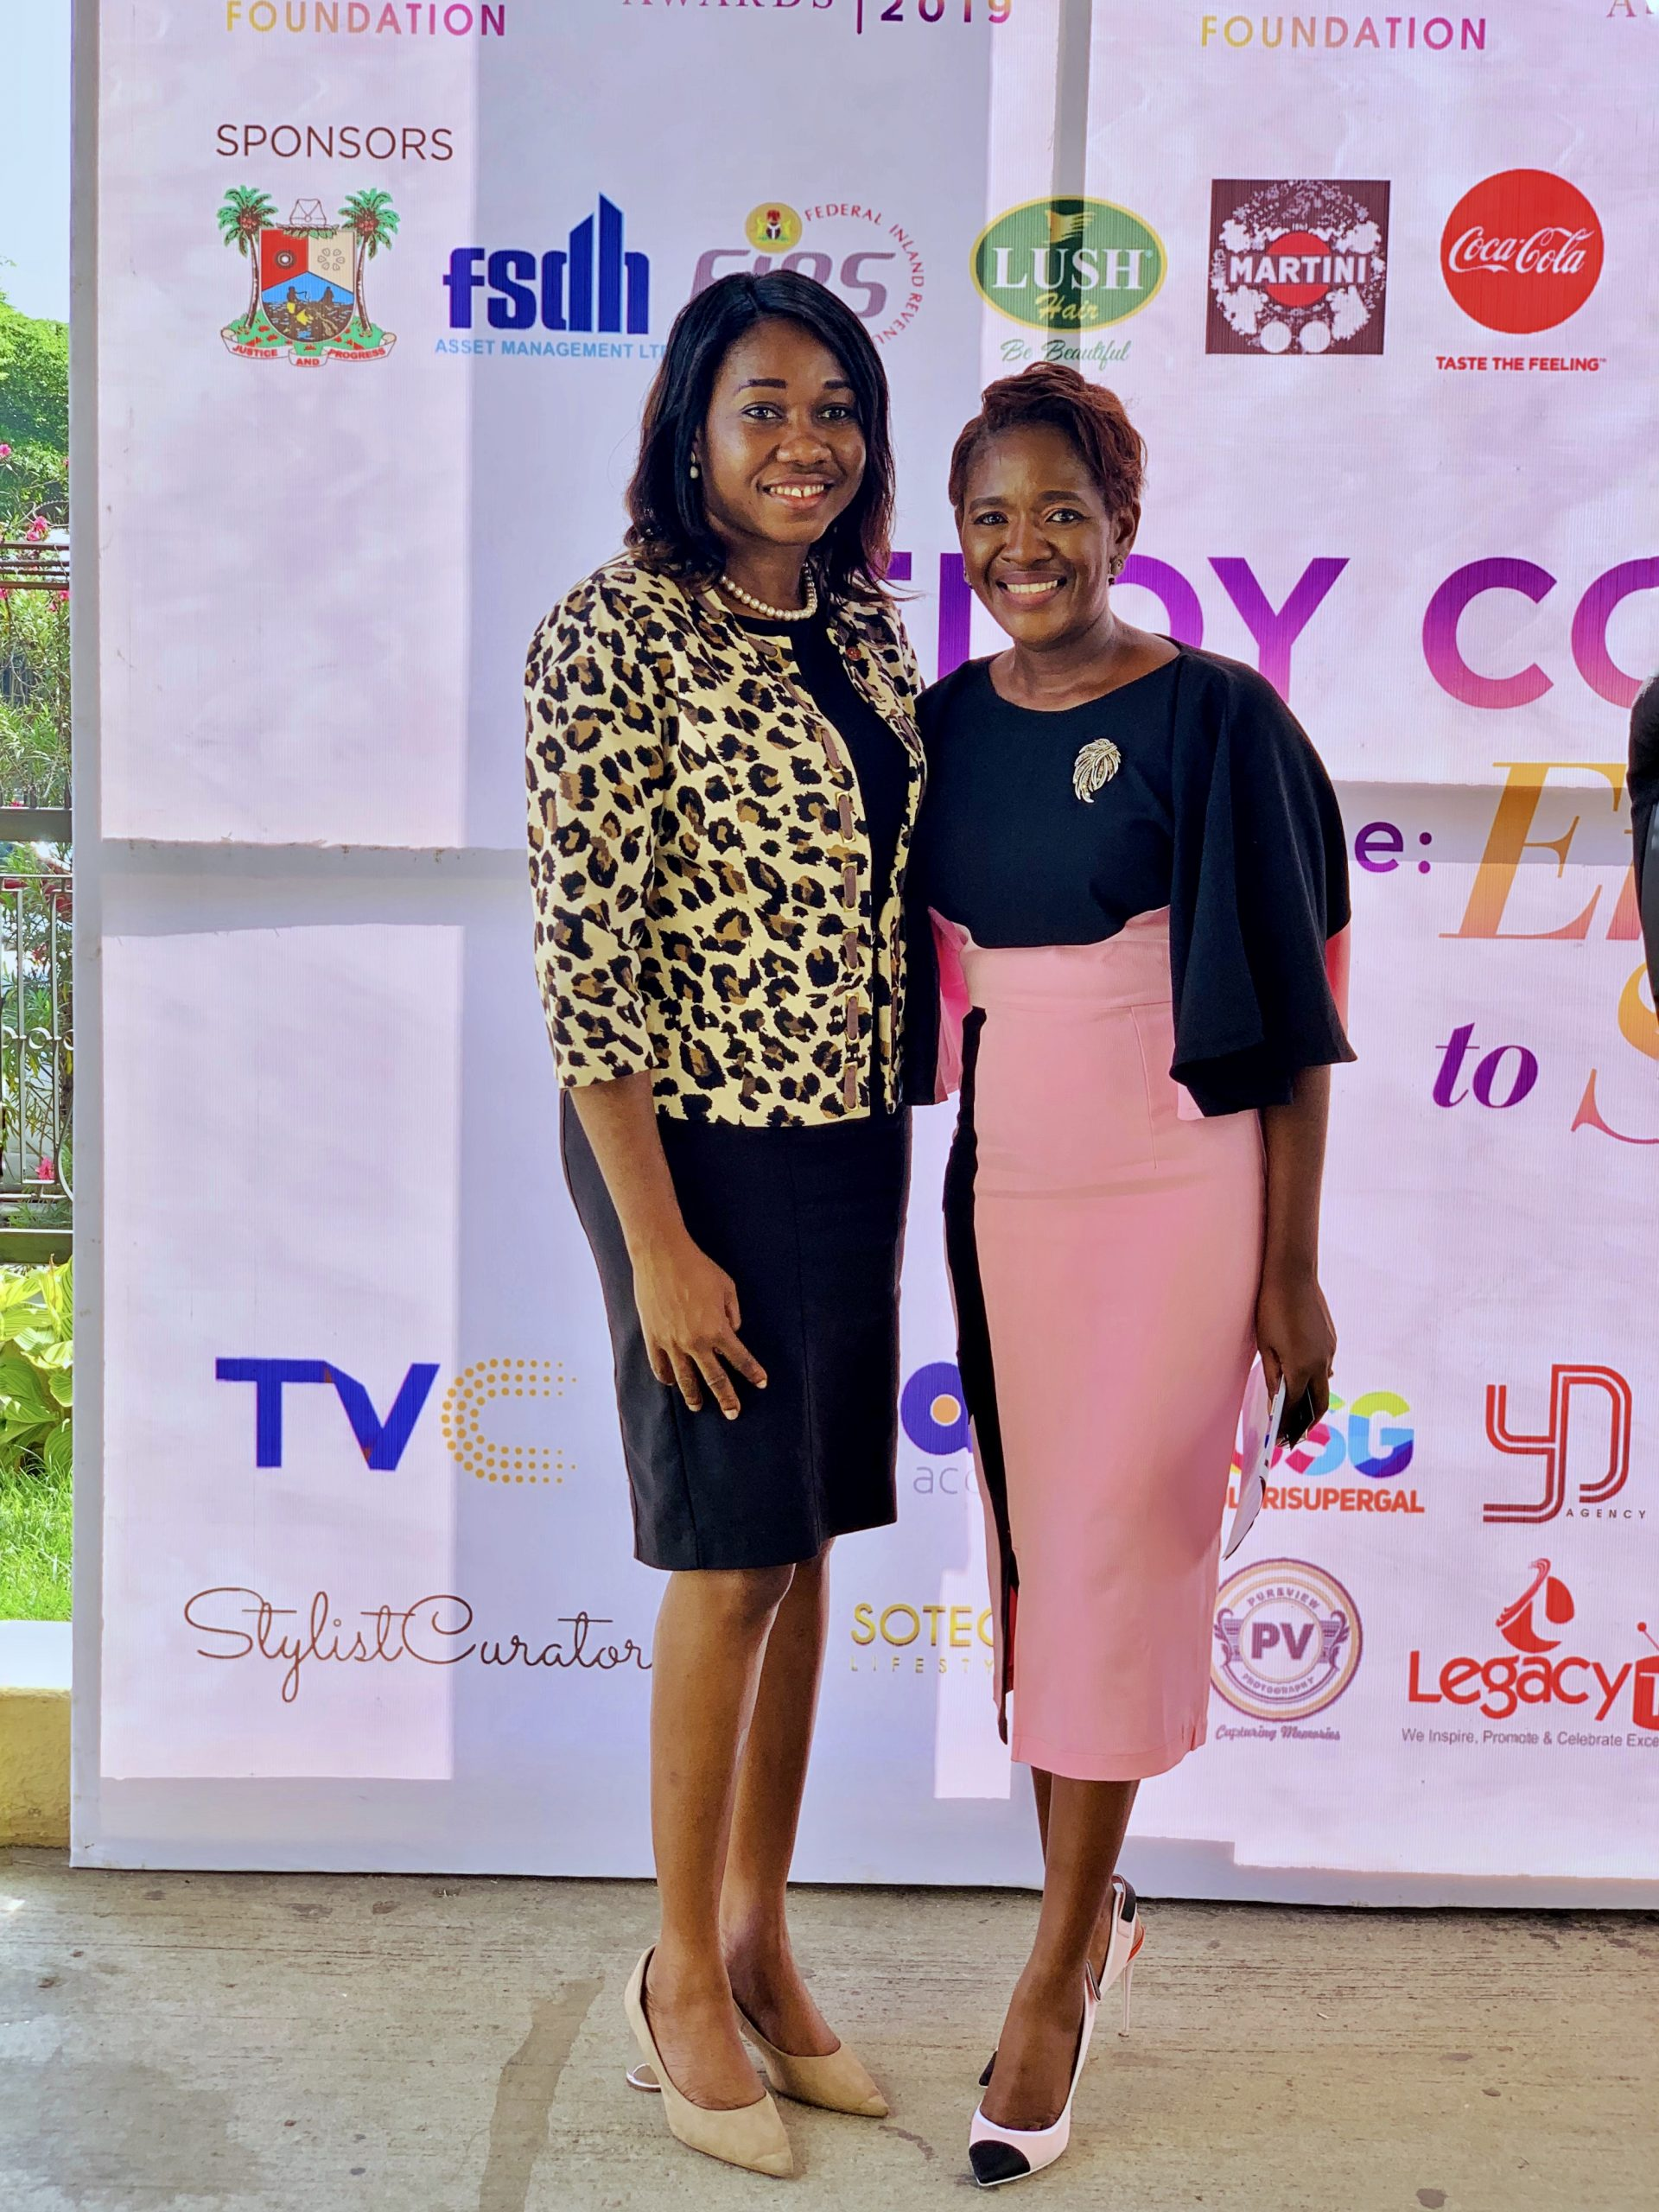 TEF Director of Operations, Ifeoma Okafor-Obi's Speech at Eloy Conference 2019